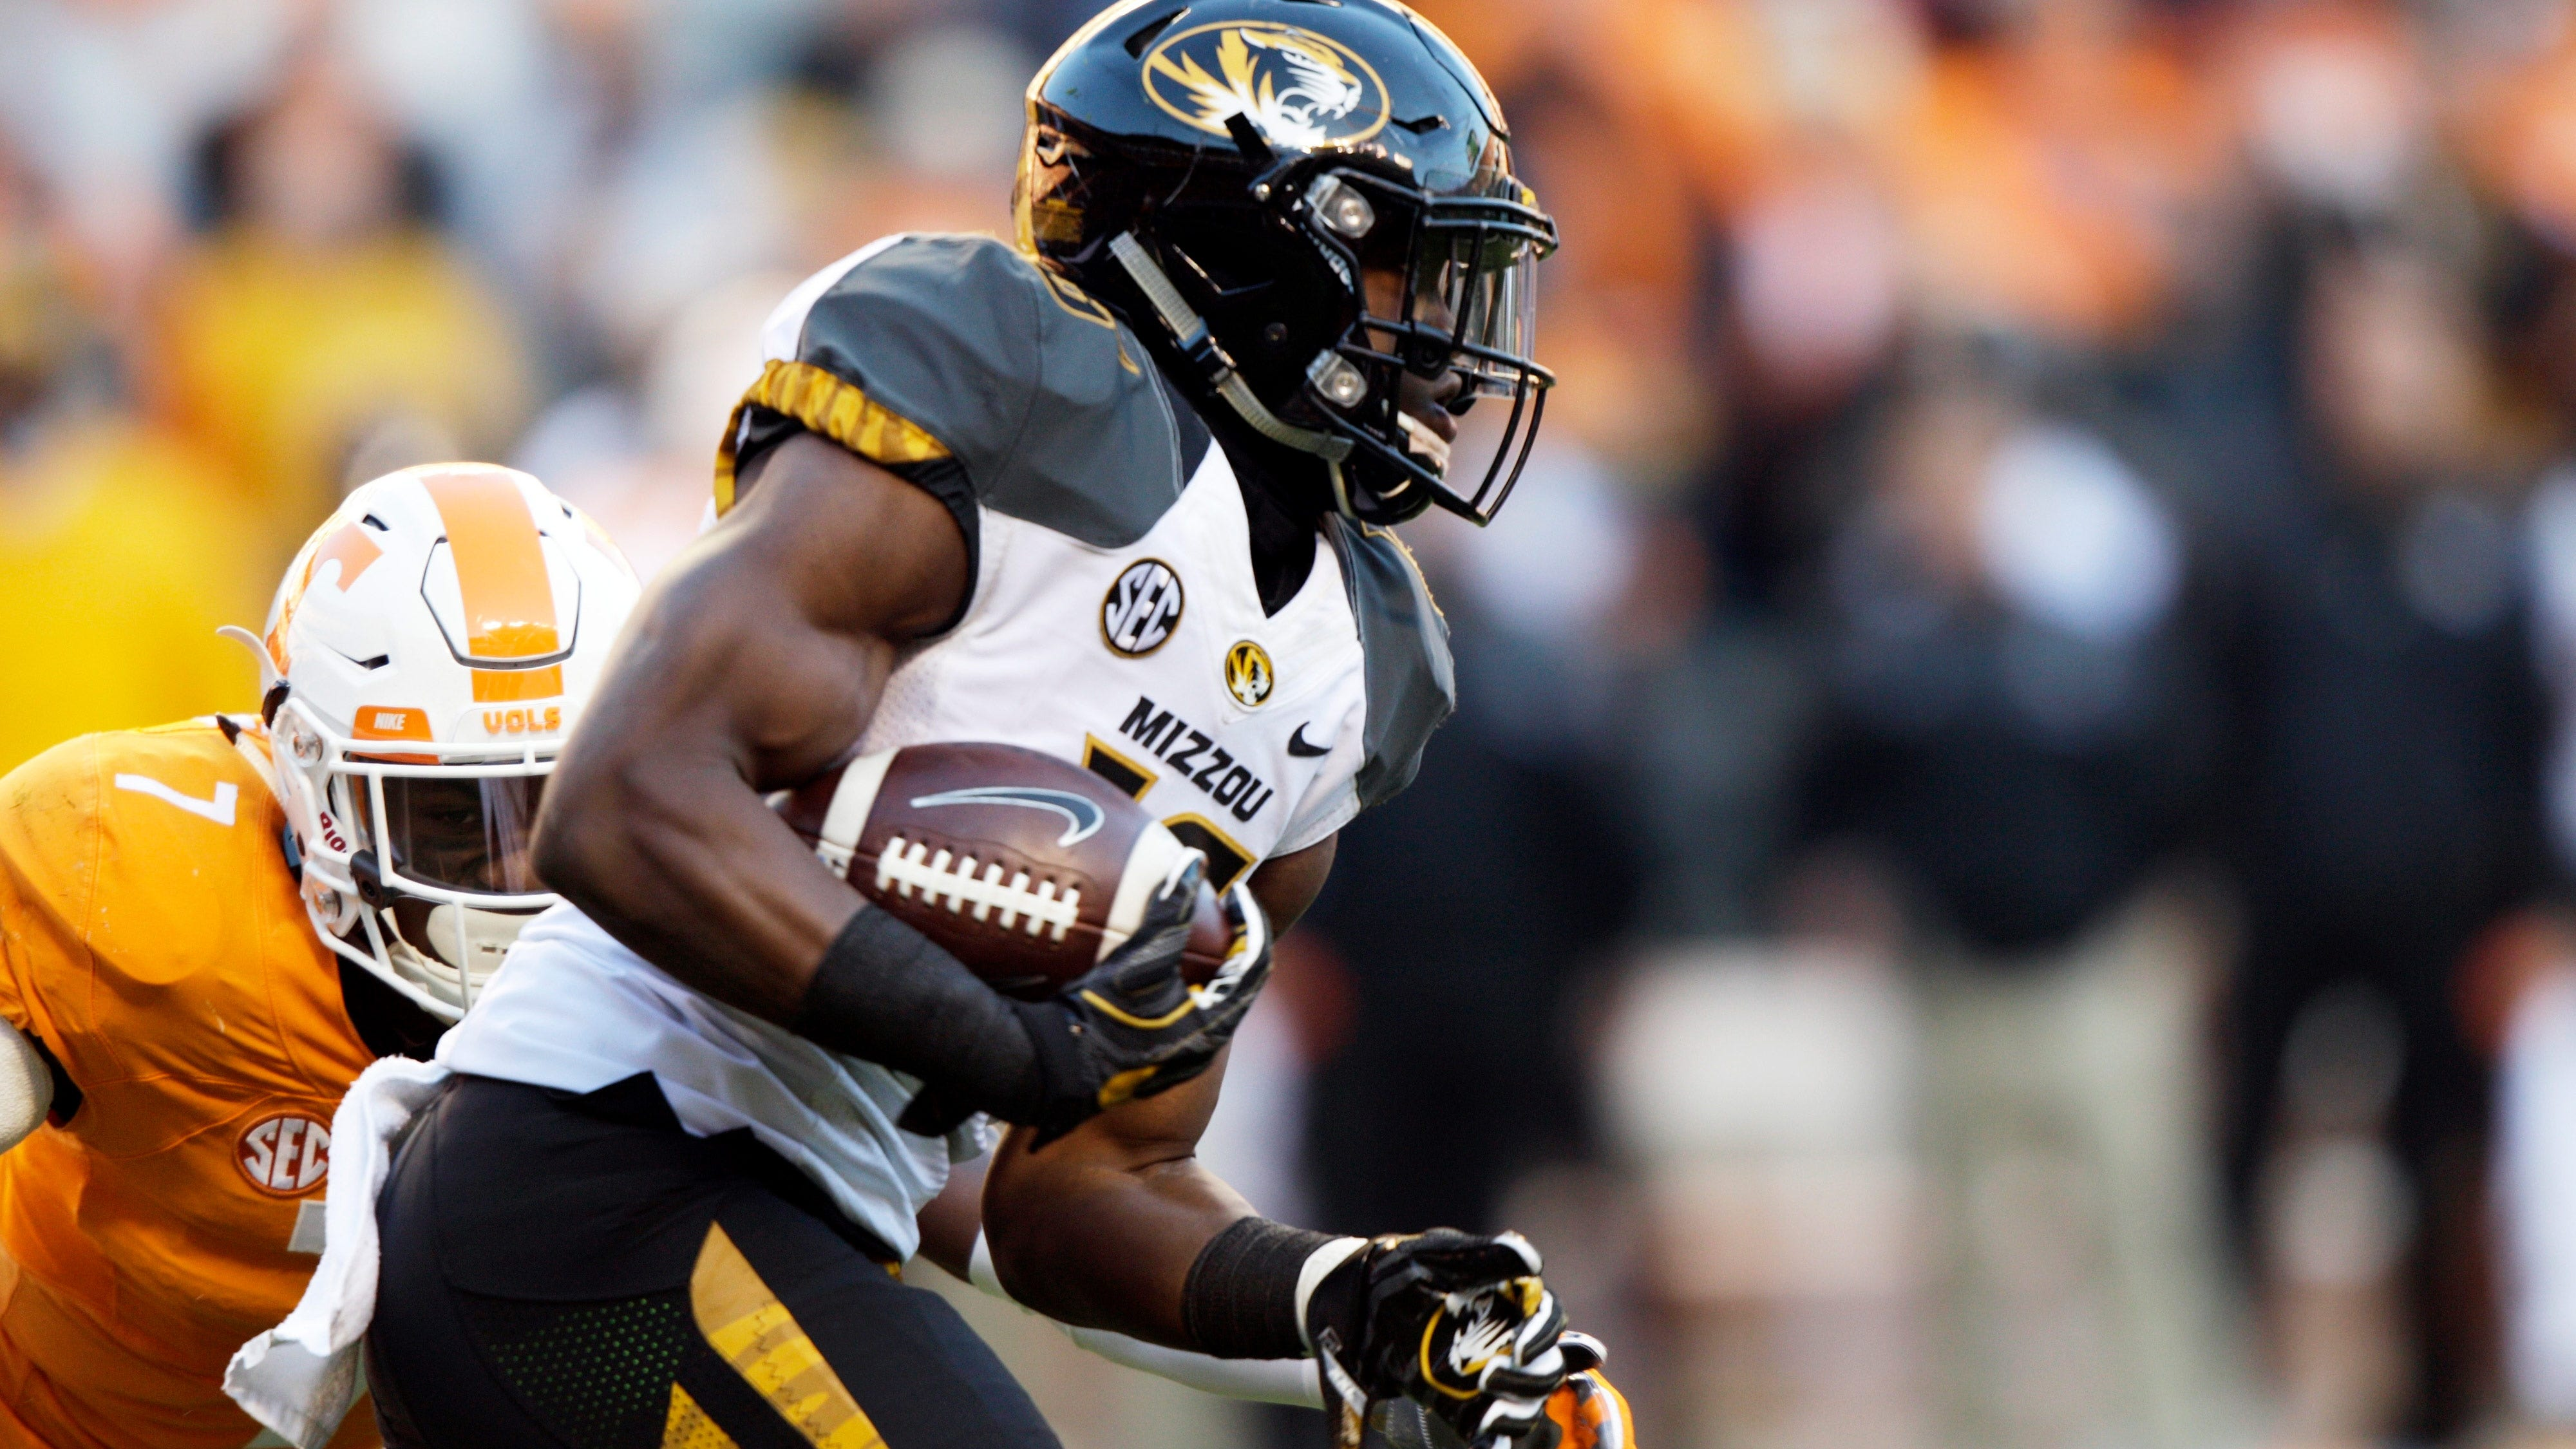 best service 66c75 517fc Mizzou RB Crockett arrested on marijuana charge, suspended ...